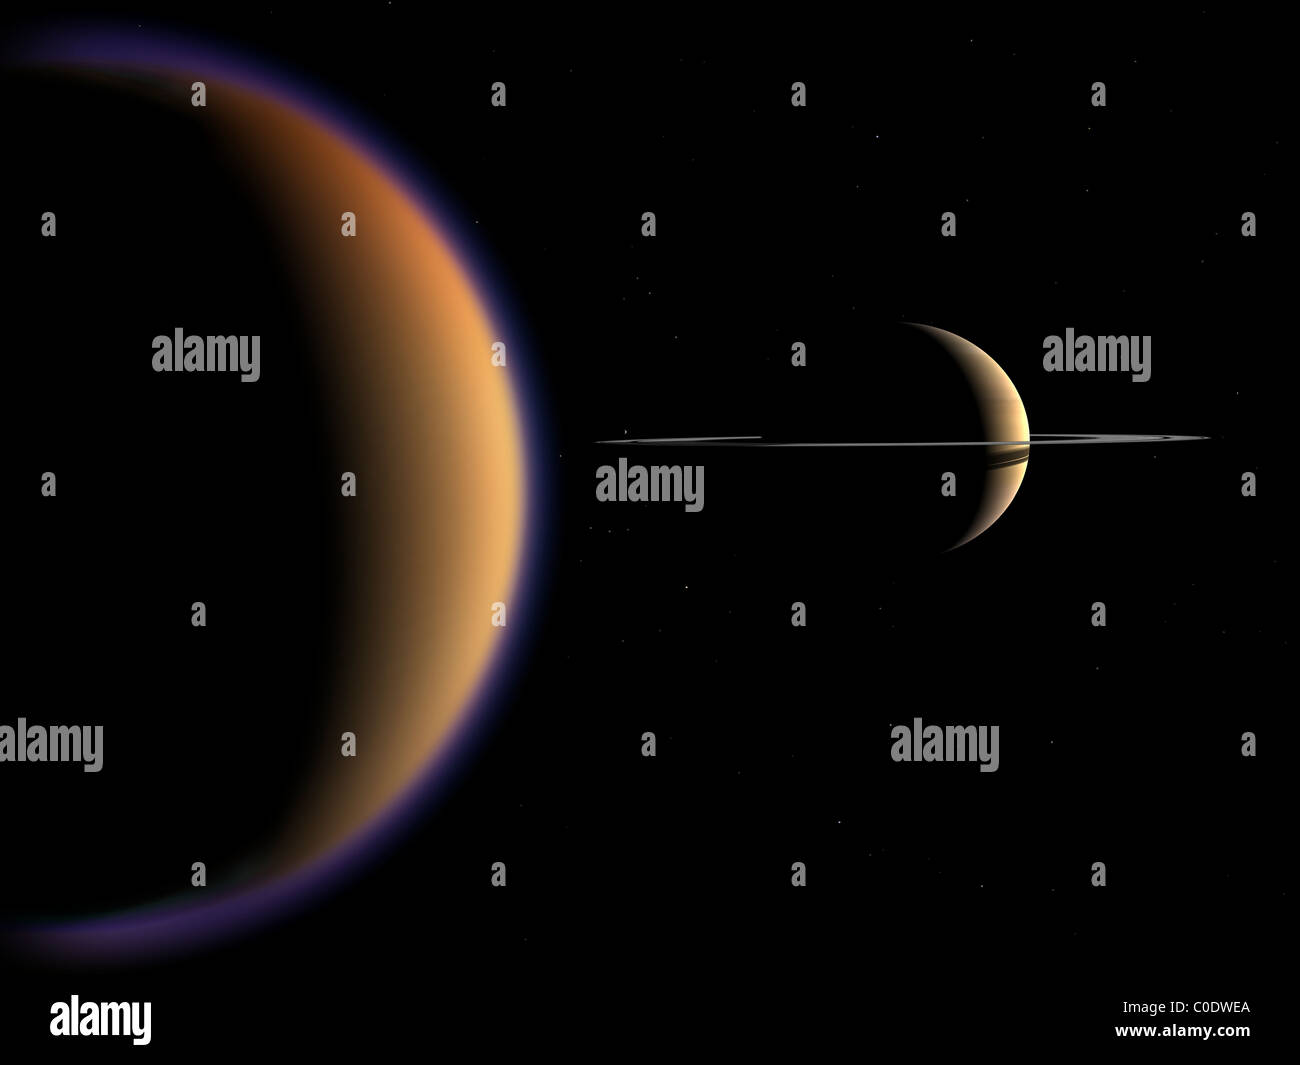 Artist's concept of Saturn and its moon Titan. - Stock Image